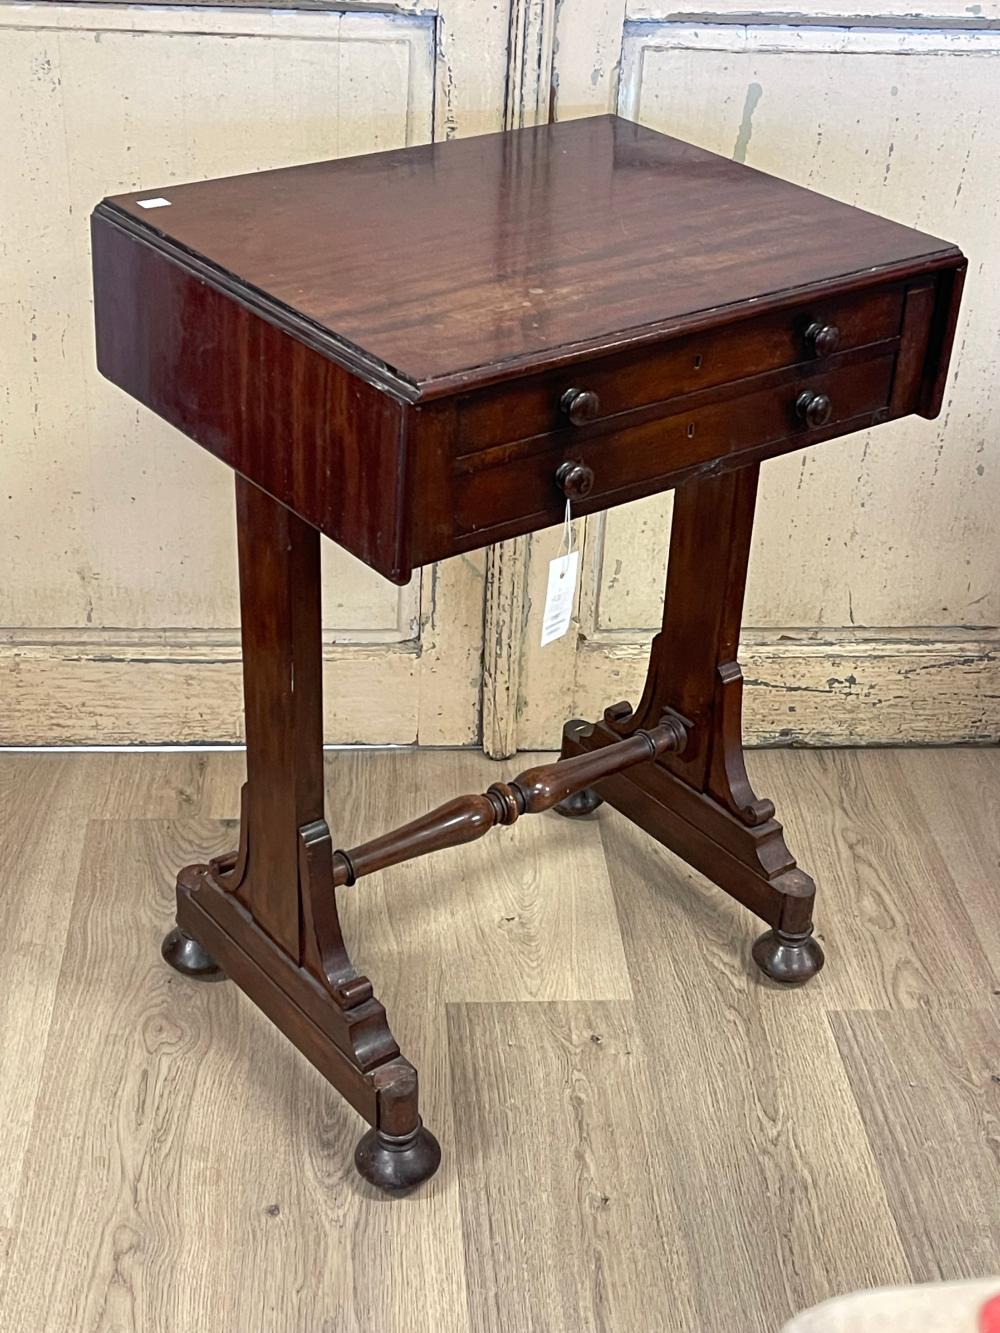 Antique 19th century mahogany work table with two drawers and two false drawers, approx 79cm H x 57cm W x 46cm D